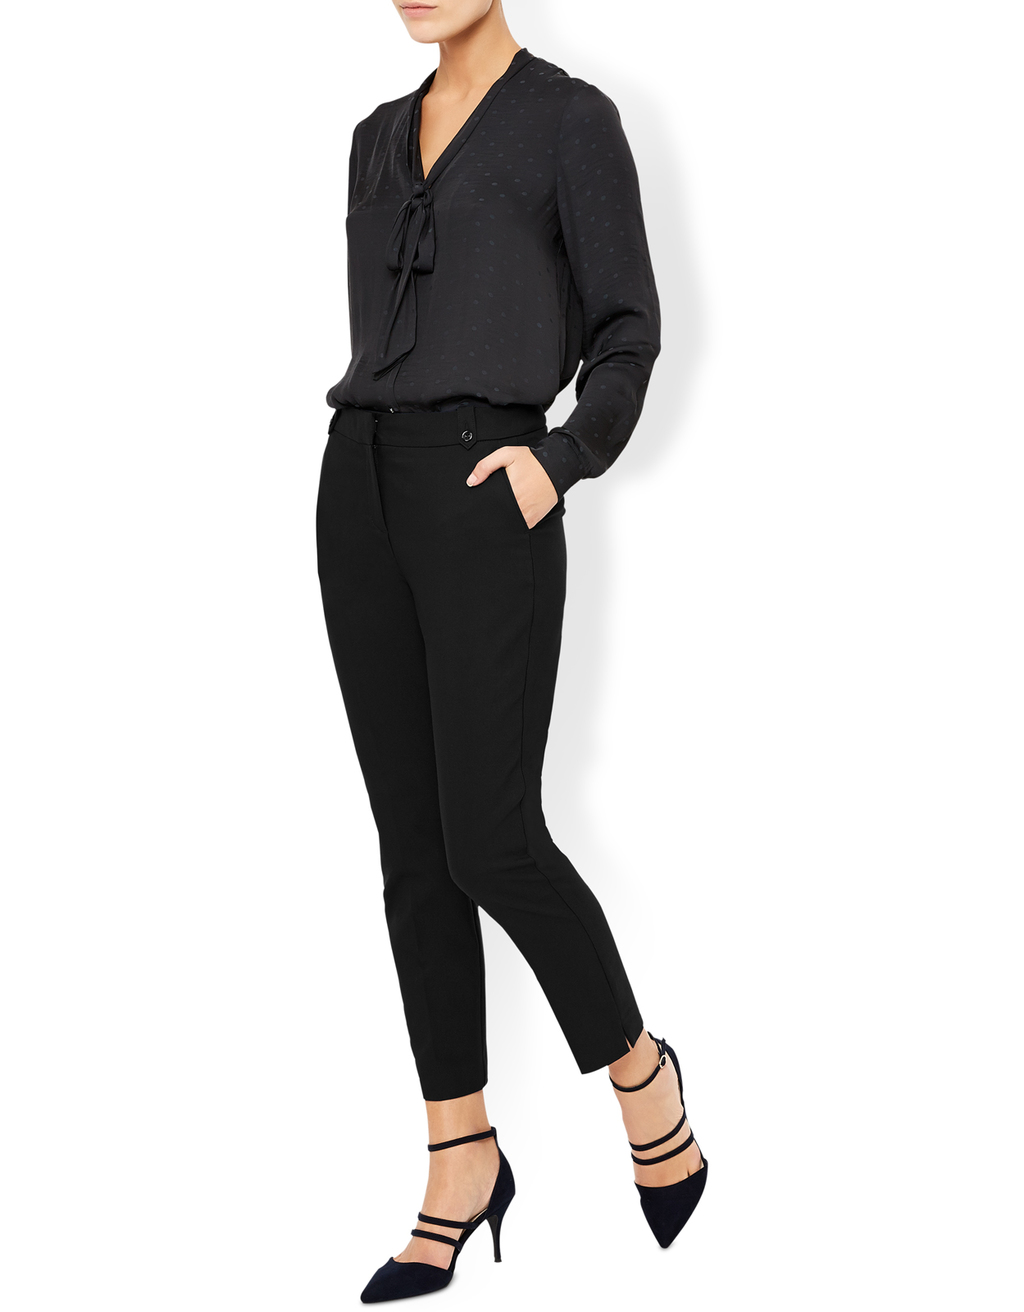 Bonnie Crop Trouser - length: standard; pattern: plain; style: peg leg; waist: high rise; predominant colour: black; occasions: work, creative work; fibres: polyester/polyamide - 100%; fit: tapered; pattern type: fabric; texture group: other - light to midweight; wardrobe: basic; season: a/w 2016